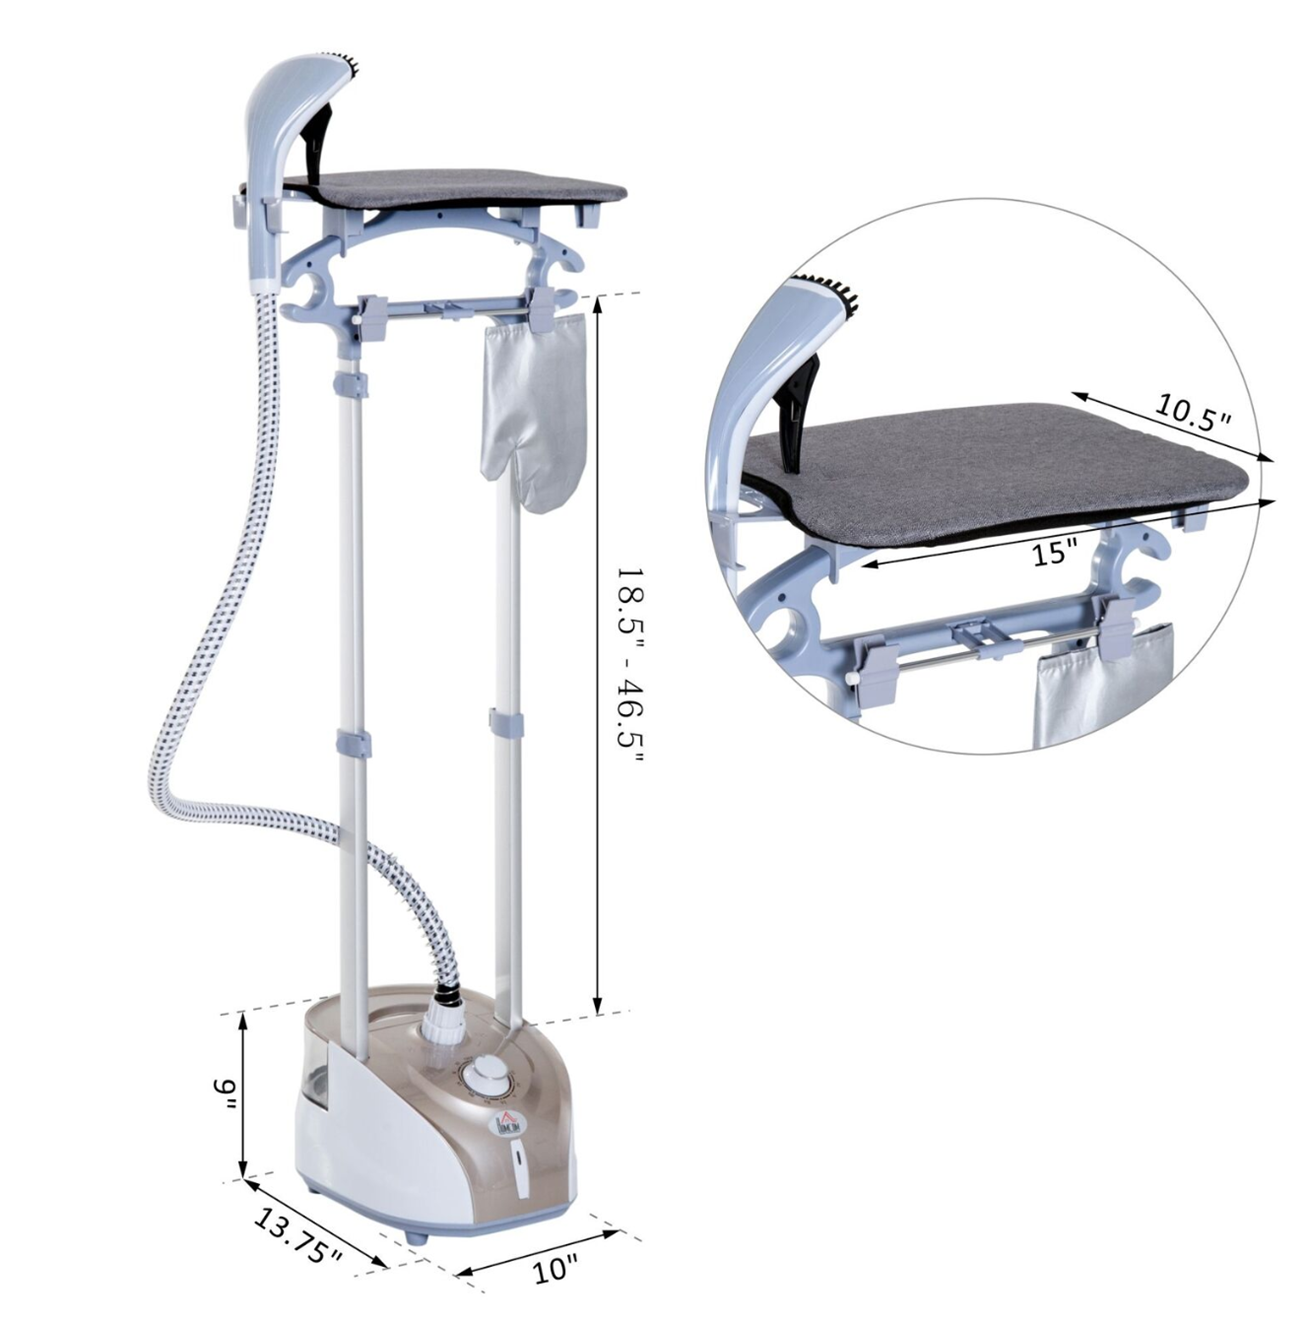 Best Garment Steamer with built in ironing board for ironing all clothes and curtains